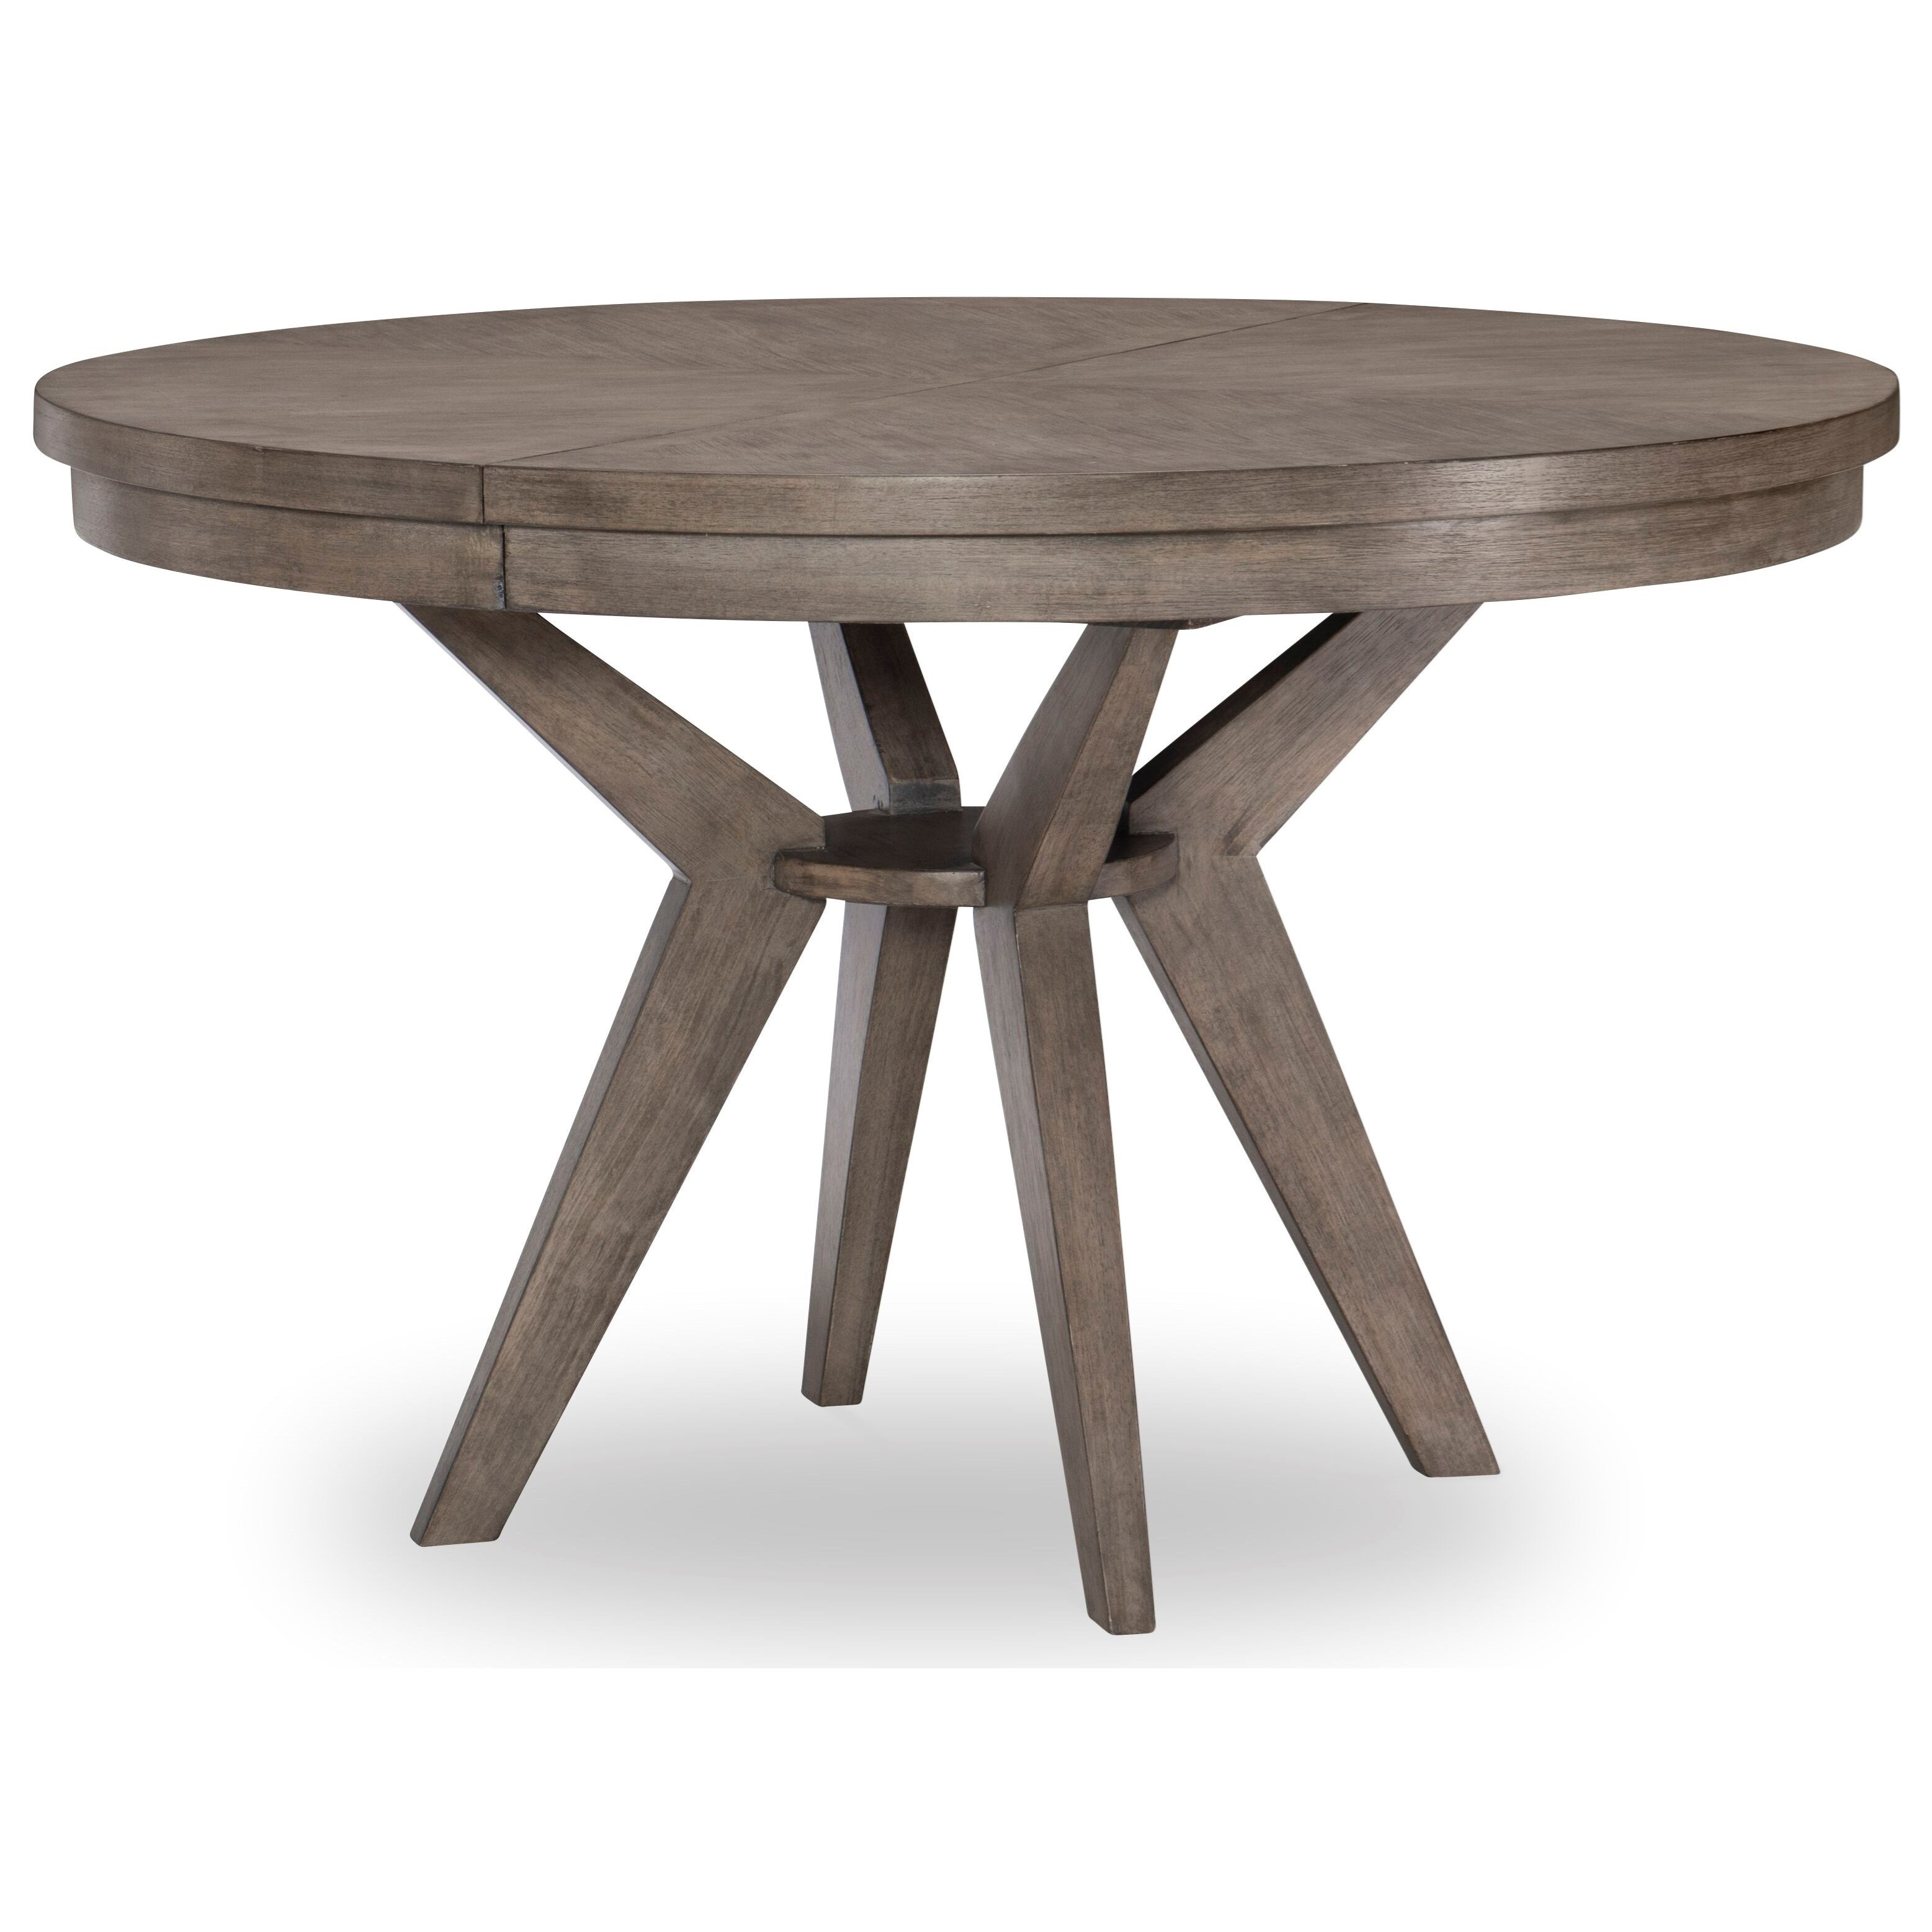 Greystone Round to Oval Pedestal Table by Legacy Classic at Stoney Creek Furniture